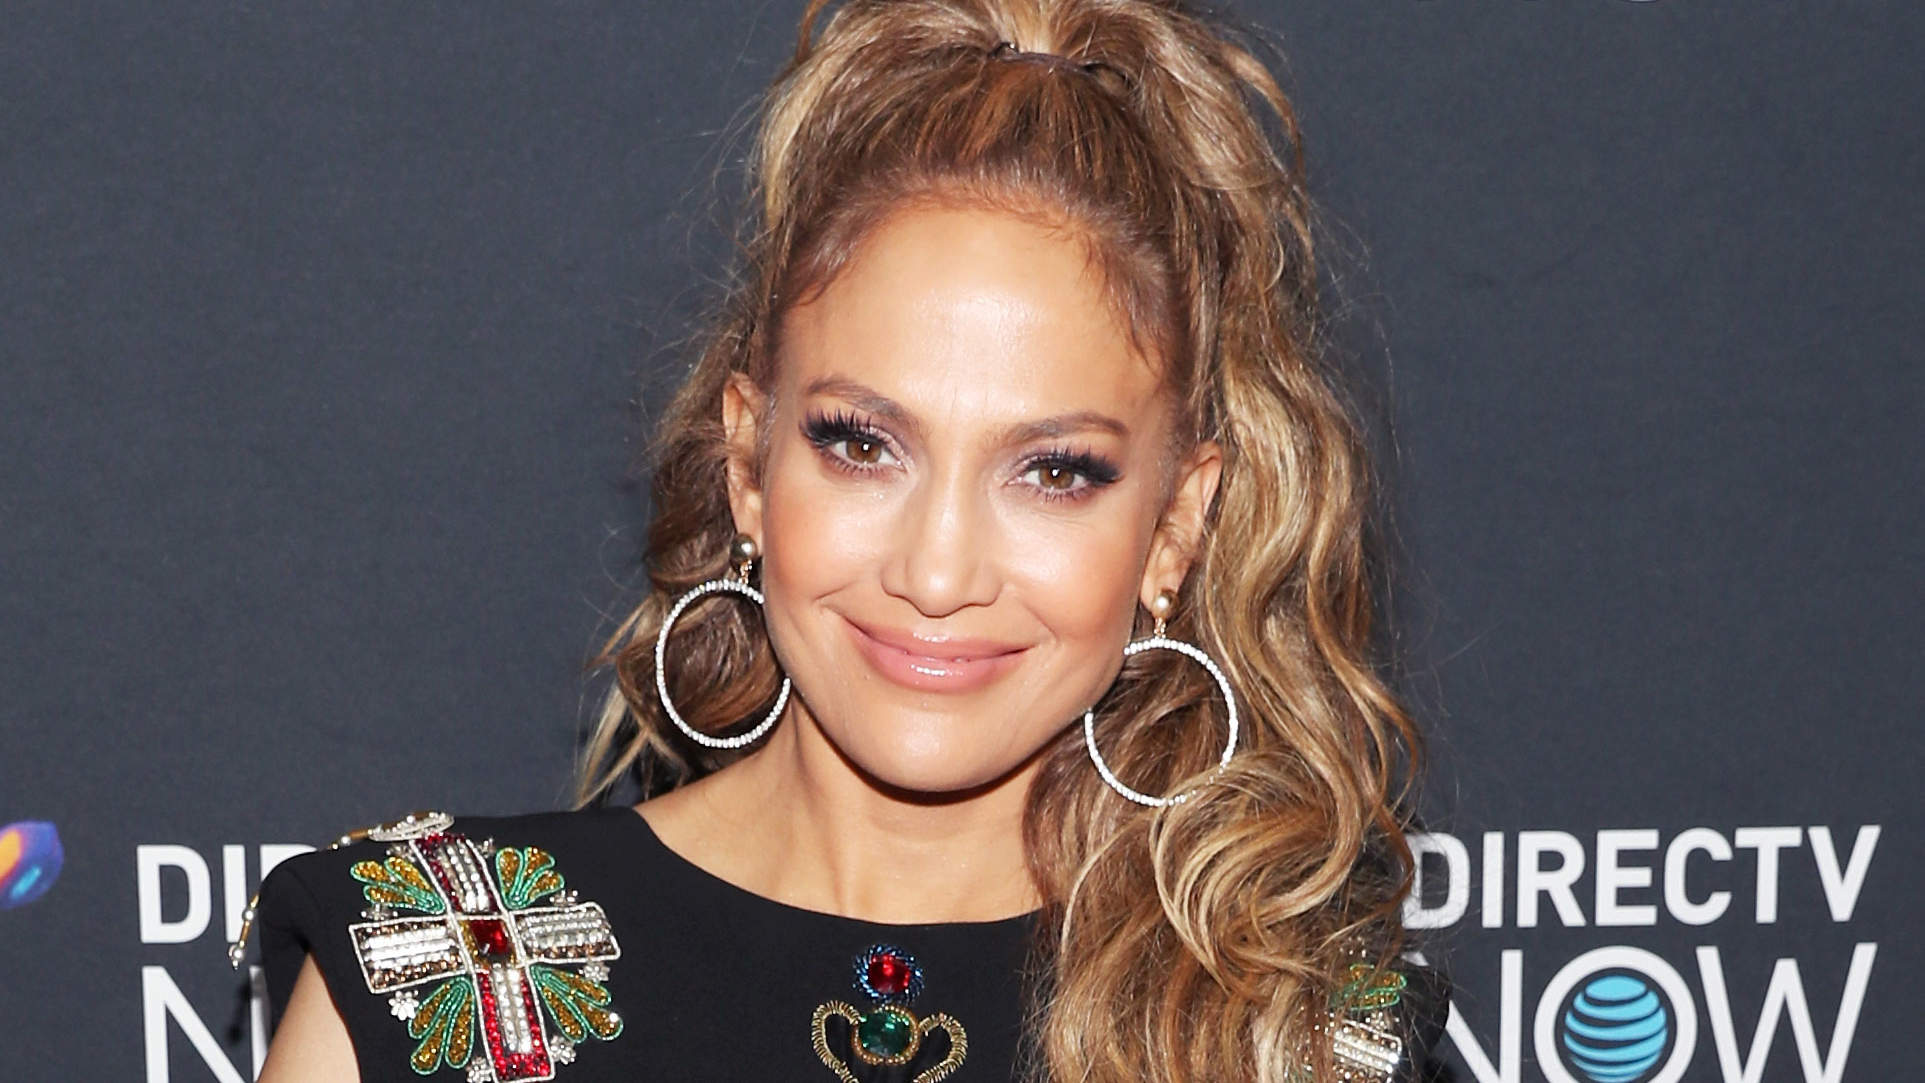 Jennifer Lopez Posts Ab-Filled Gym Selfie Ahead of Her 49th Birthday